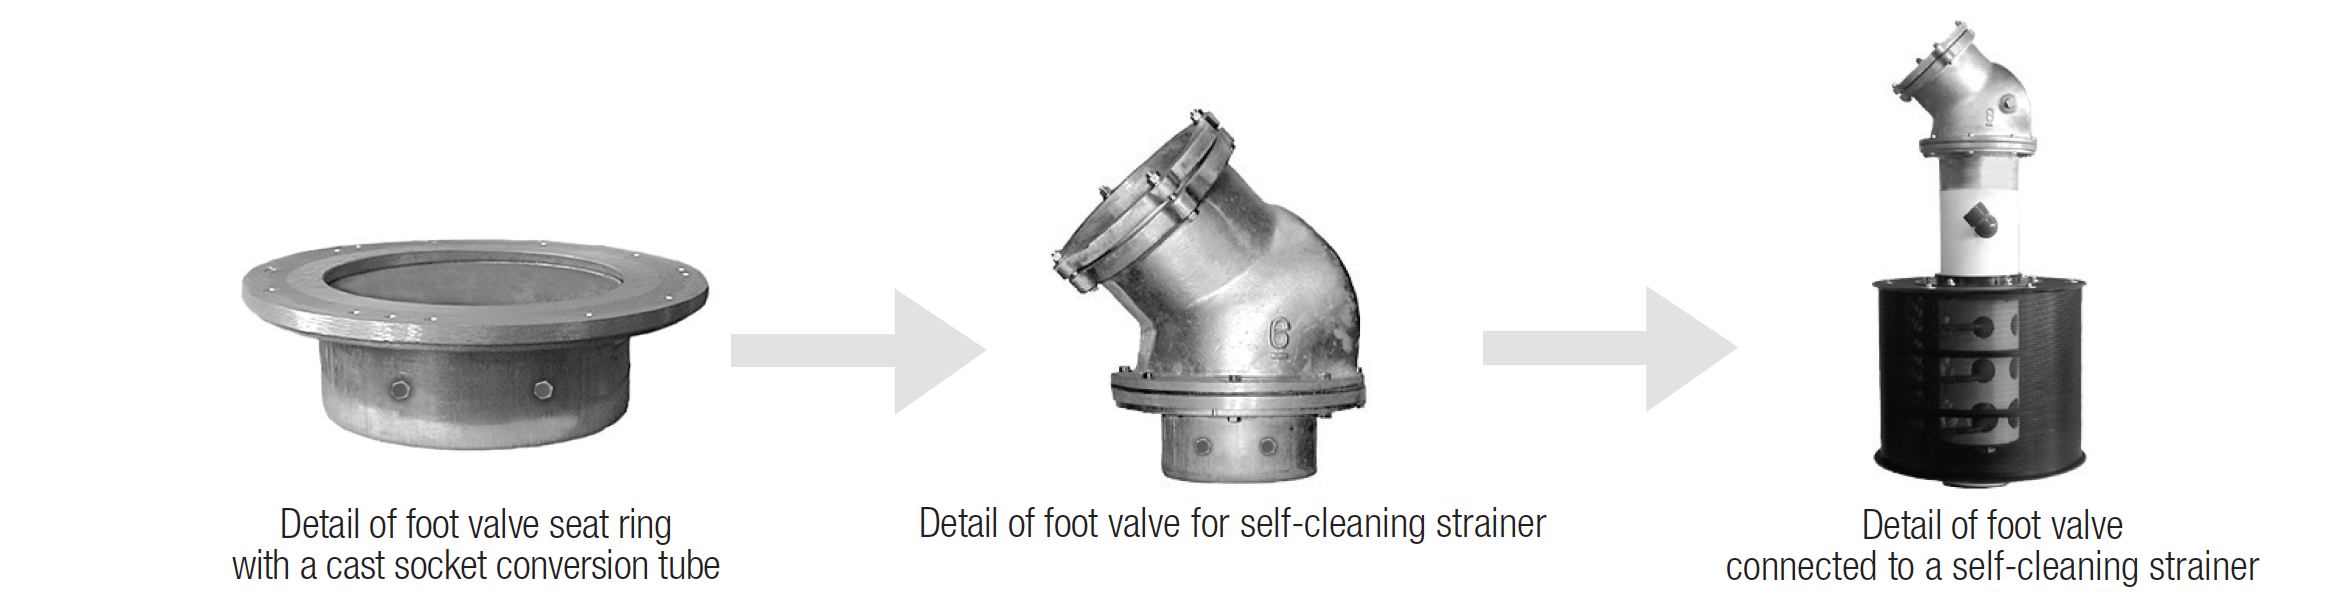 foot valve with self cleaning strainer